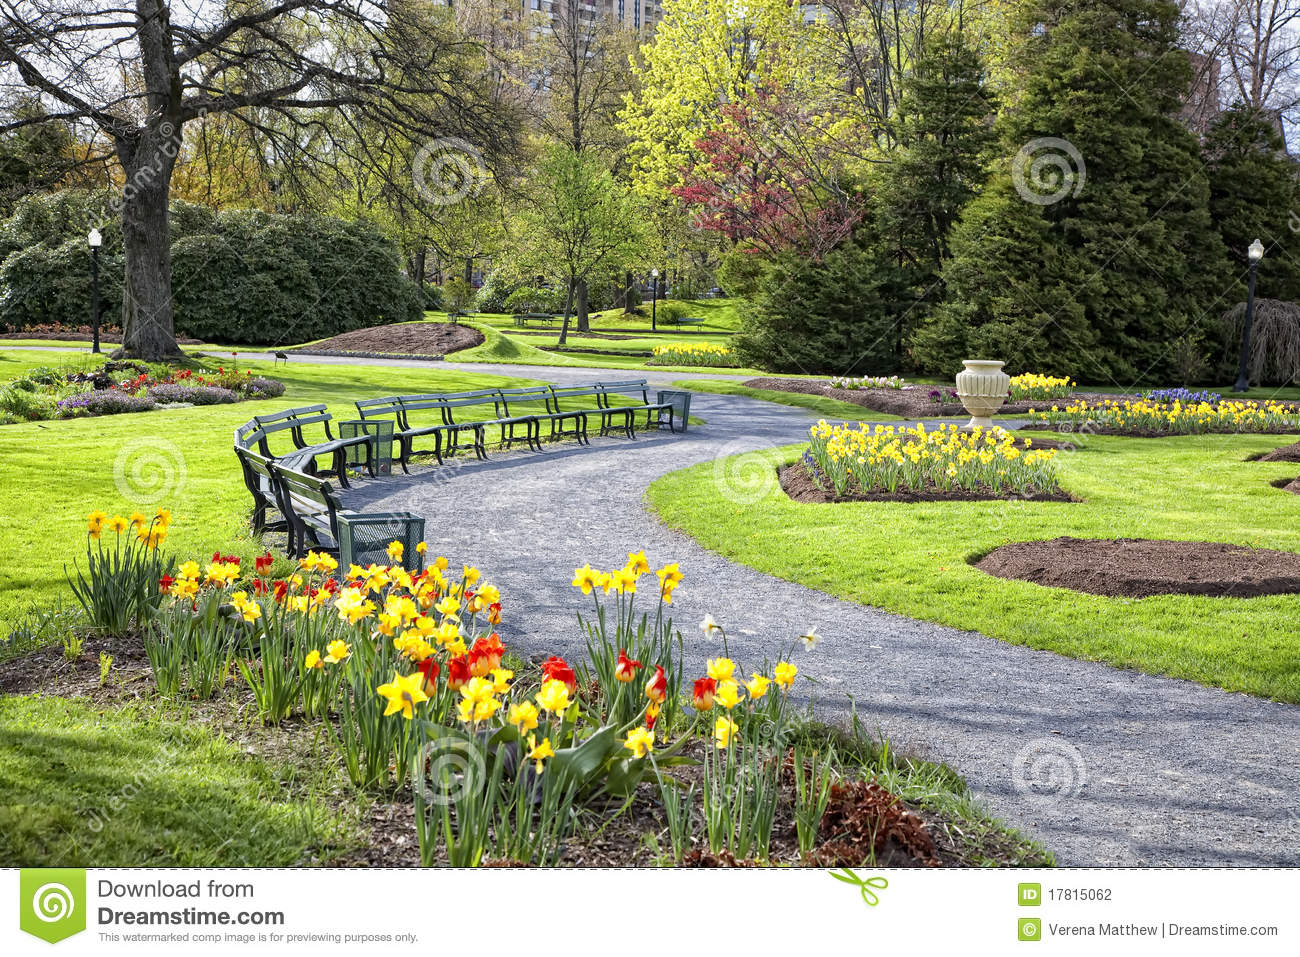 Jardin public de printemps photographie stock image for Jardin public